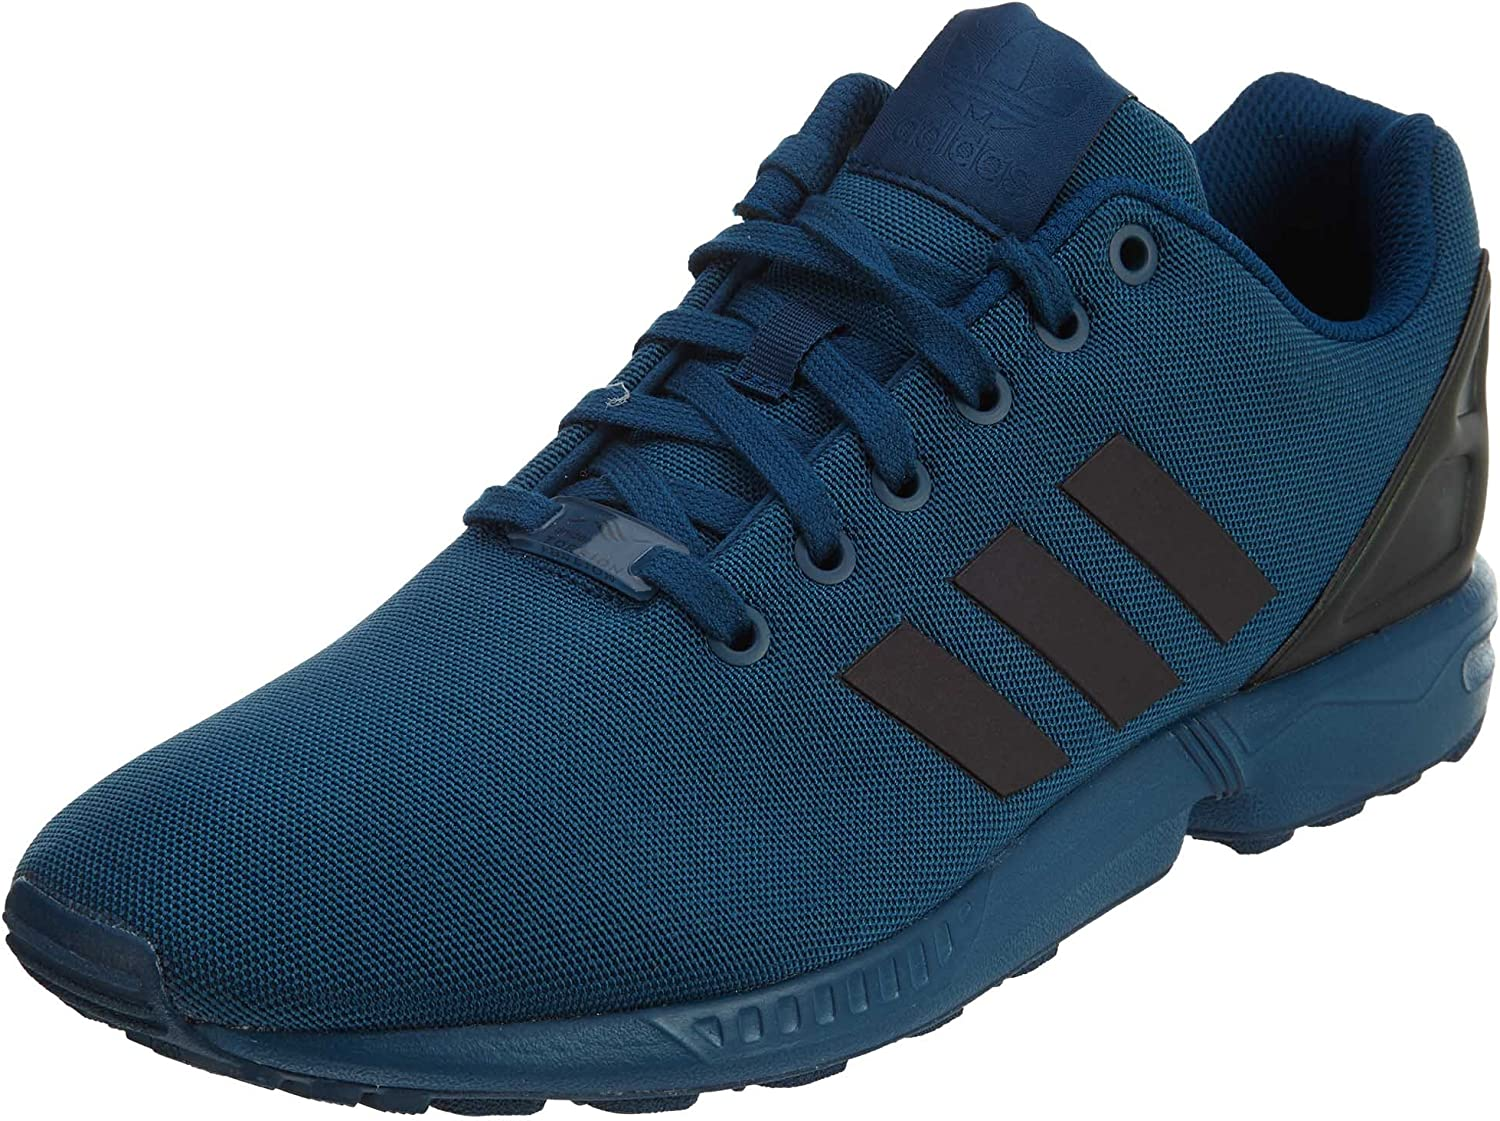 primer ministro Accesible China  Amazon.com | adidas Mens Originals ZX Flux Shoes #S76529 (11) Blue | Running